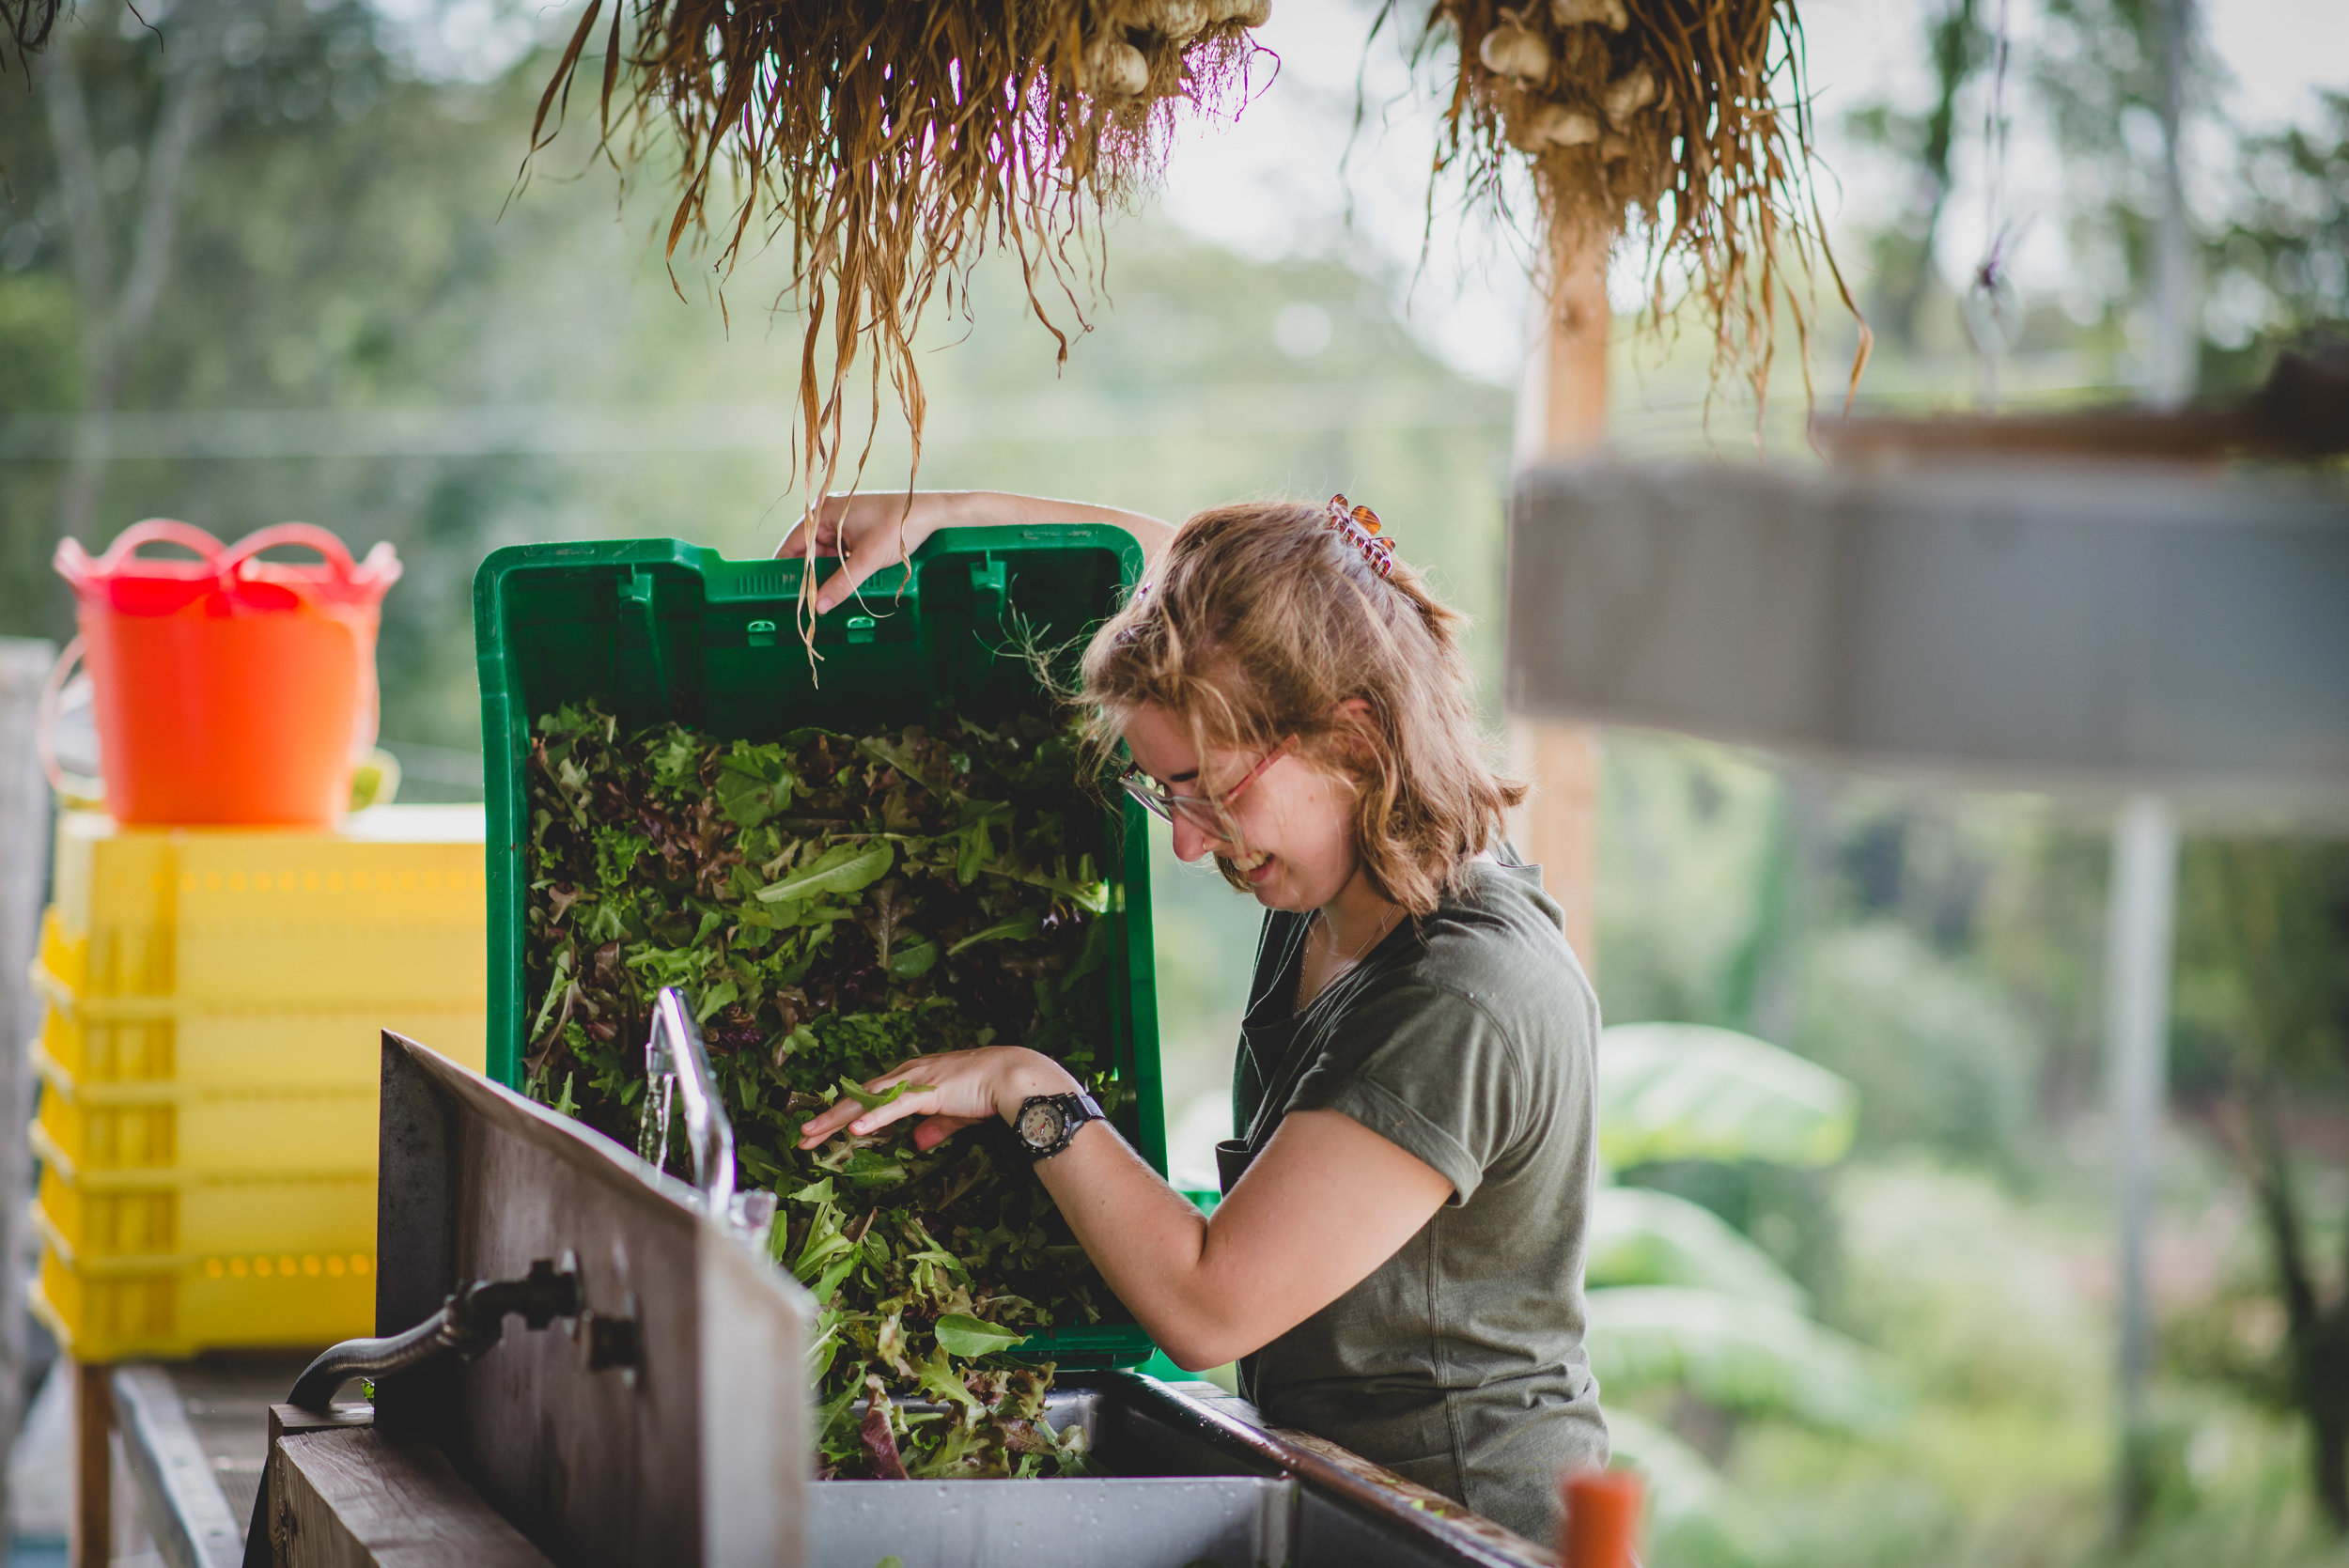 A good portion of Jenna's week is spent in the community garden, where she is learning about sustainability.